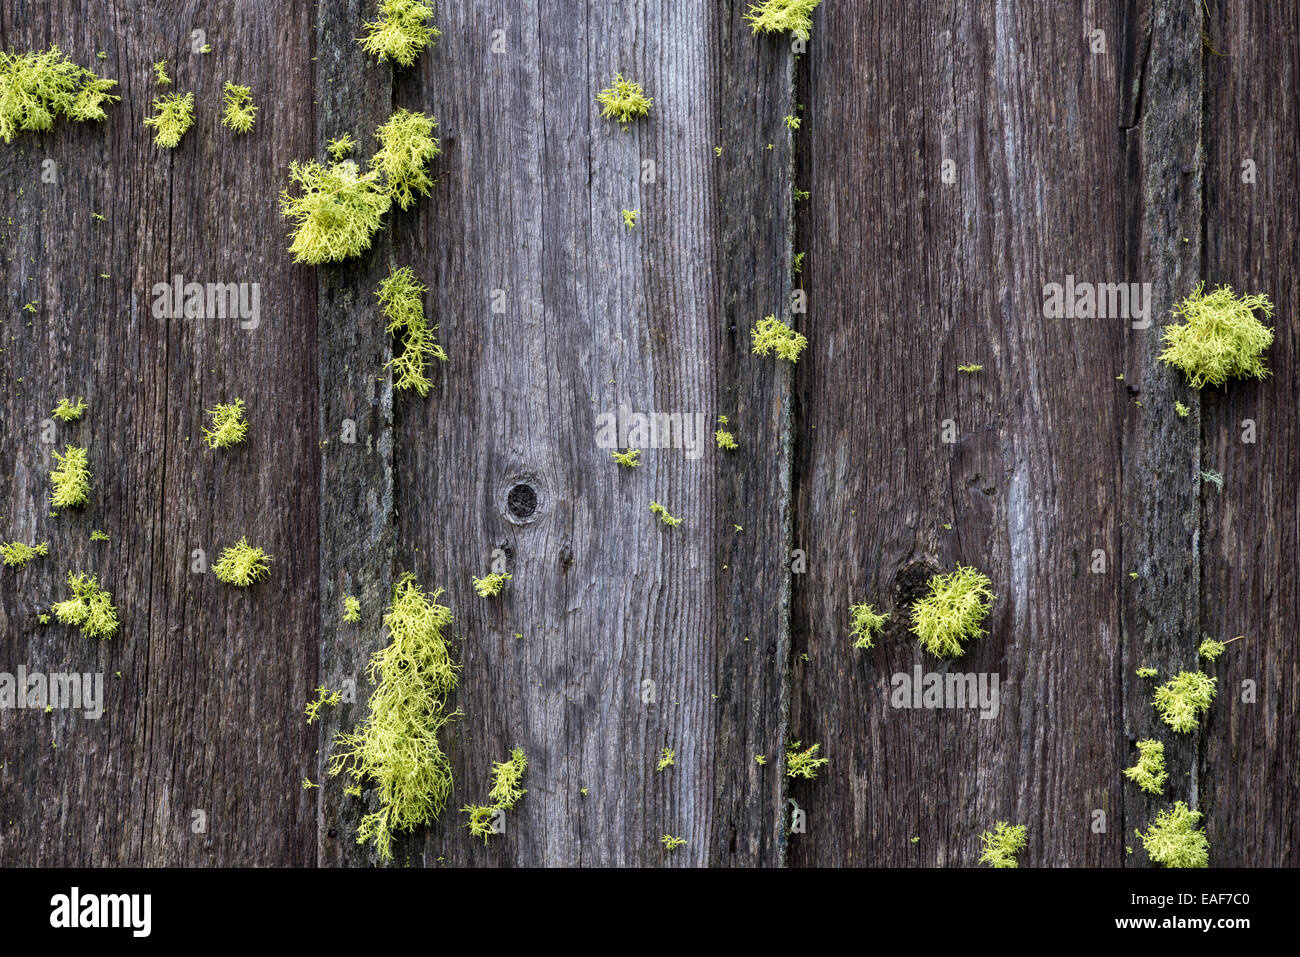 Lichen on the wood siding of a decaying cabin in Oregon's Blue Mountains. - Stock Image